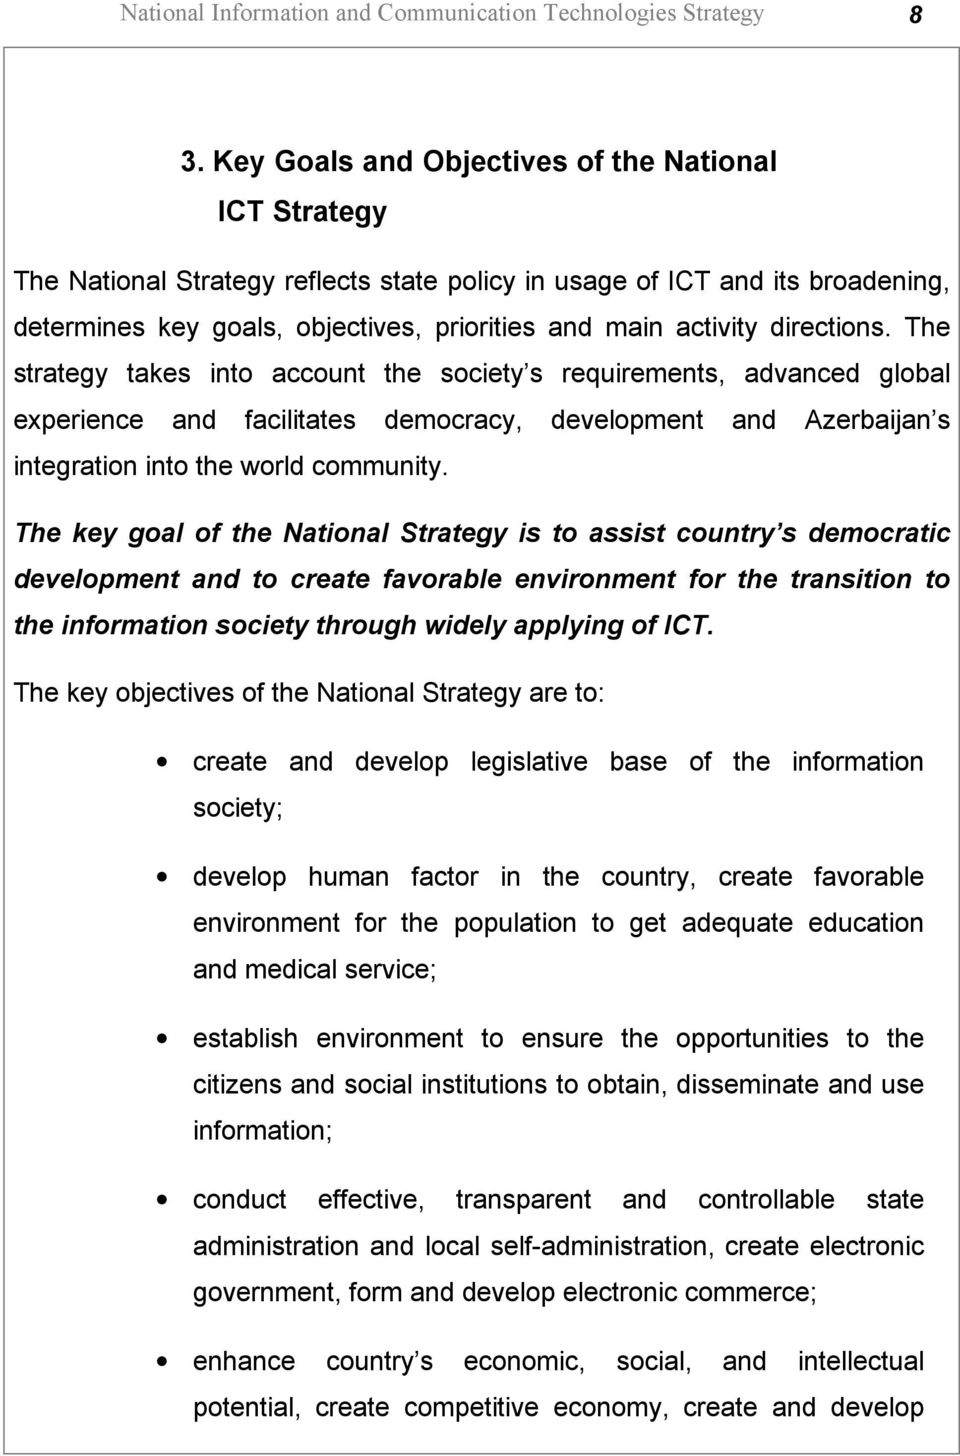 directions. The strategy takes into account the society s requirements, advanced global experience and facilitates democracy, development and Azerbaijan s integration into the world community.